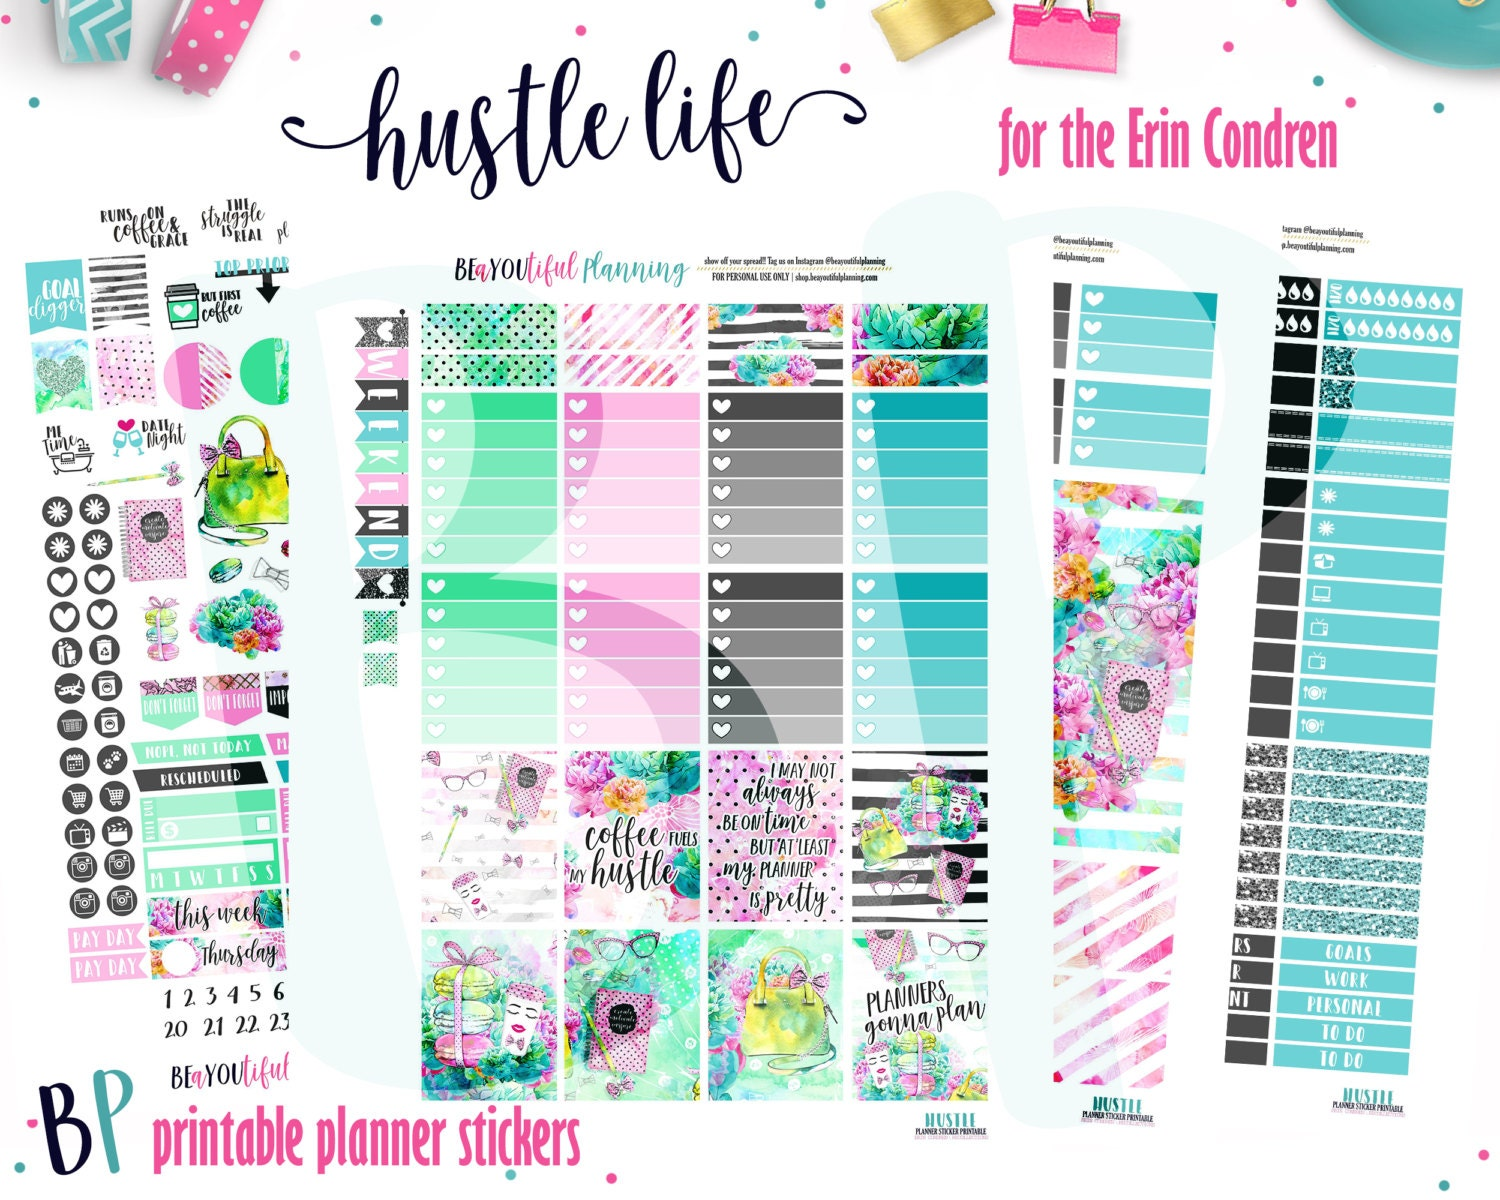 This is a picture of Agile Erin Condren Printable Stickers